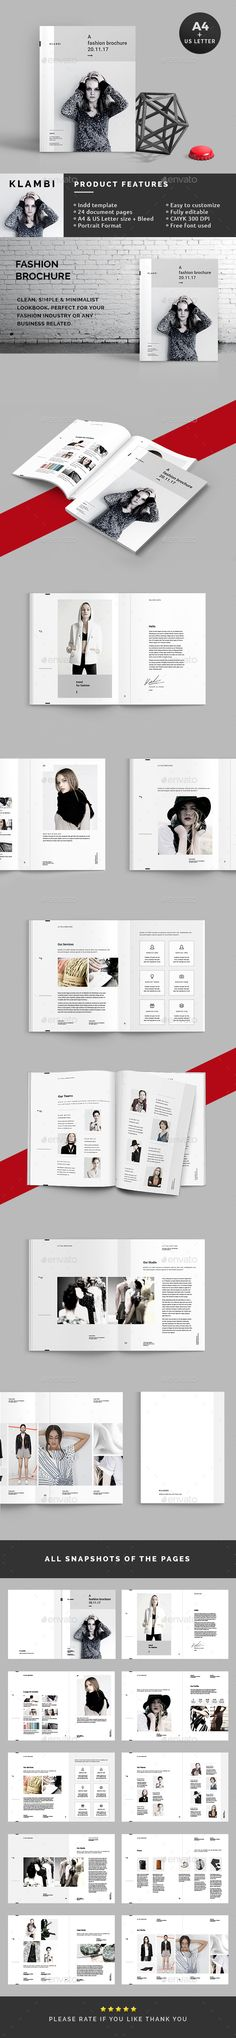 The Fashion Brochure — InDesign INDD #brochure #delicate • Download ➝ https://graphicriver.net/item/the-fashion-brochure/19128058?ref=pxcr